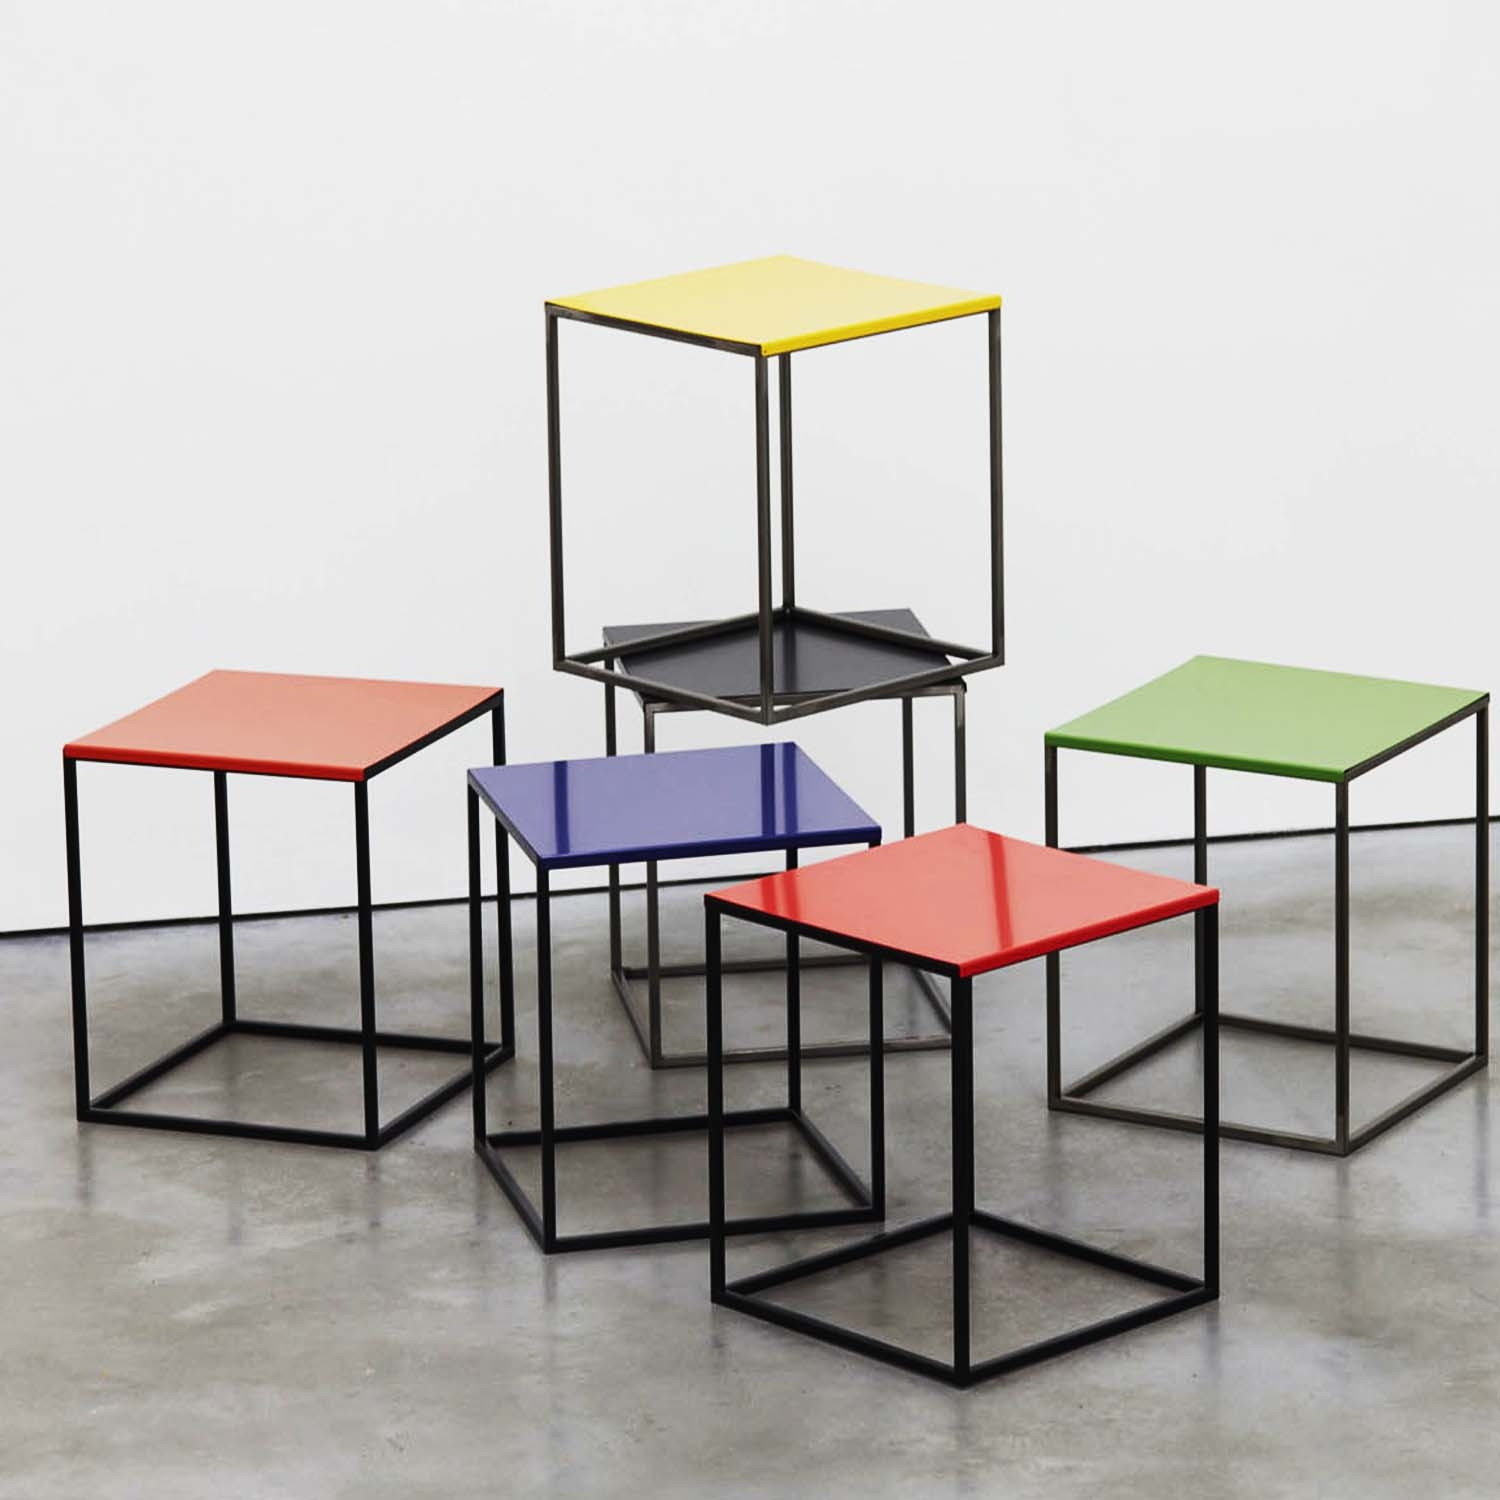 Cage Shelving Stools